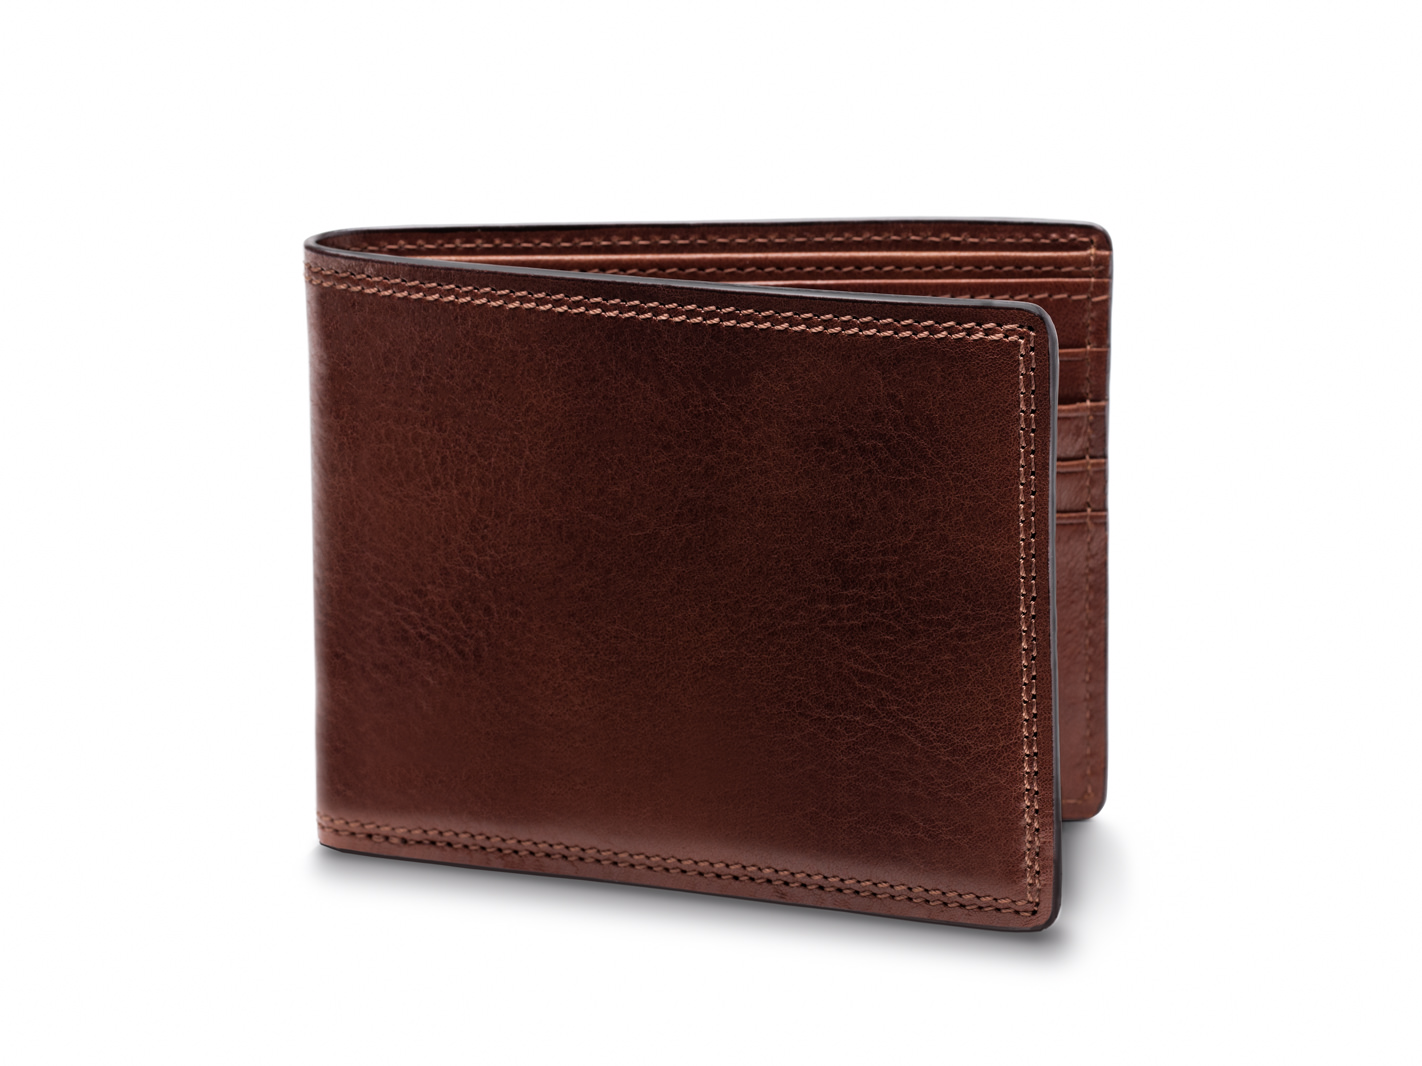 8 Pocket Deluxe Executive Wallet-218 Dark Brown - 218 Dark Brown